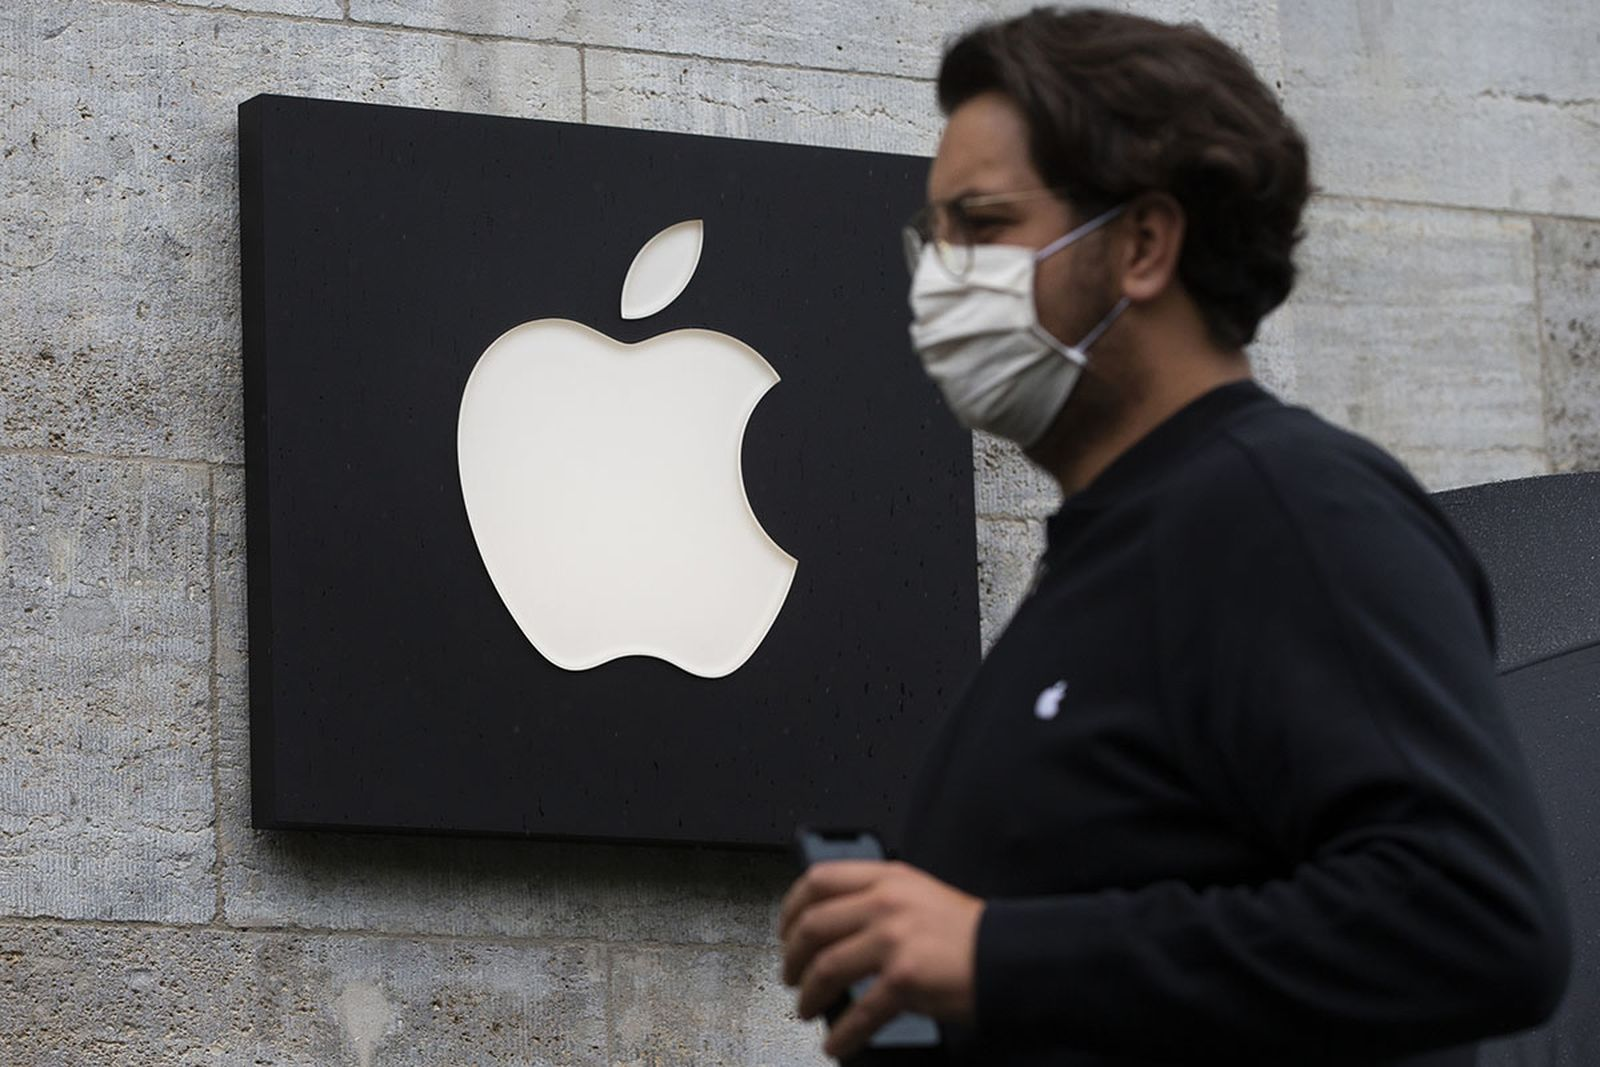 Customers who got appointments wearing medical masks wait to enter Apple Store in Berlin